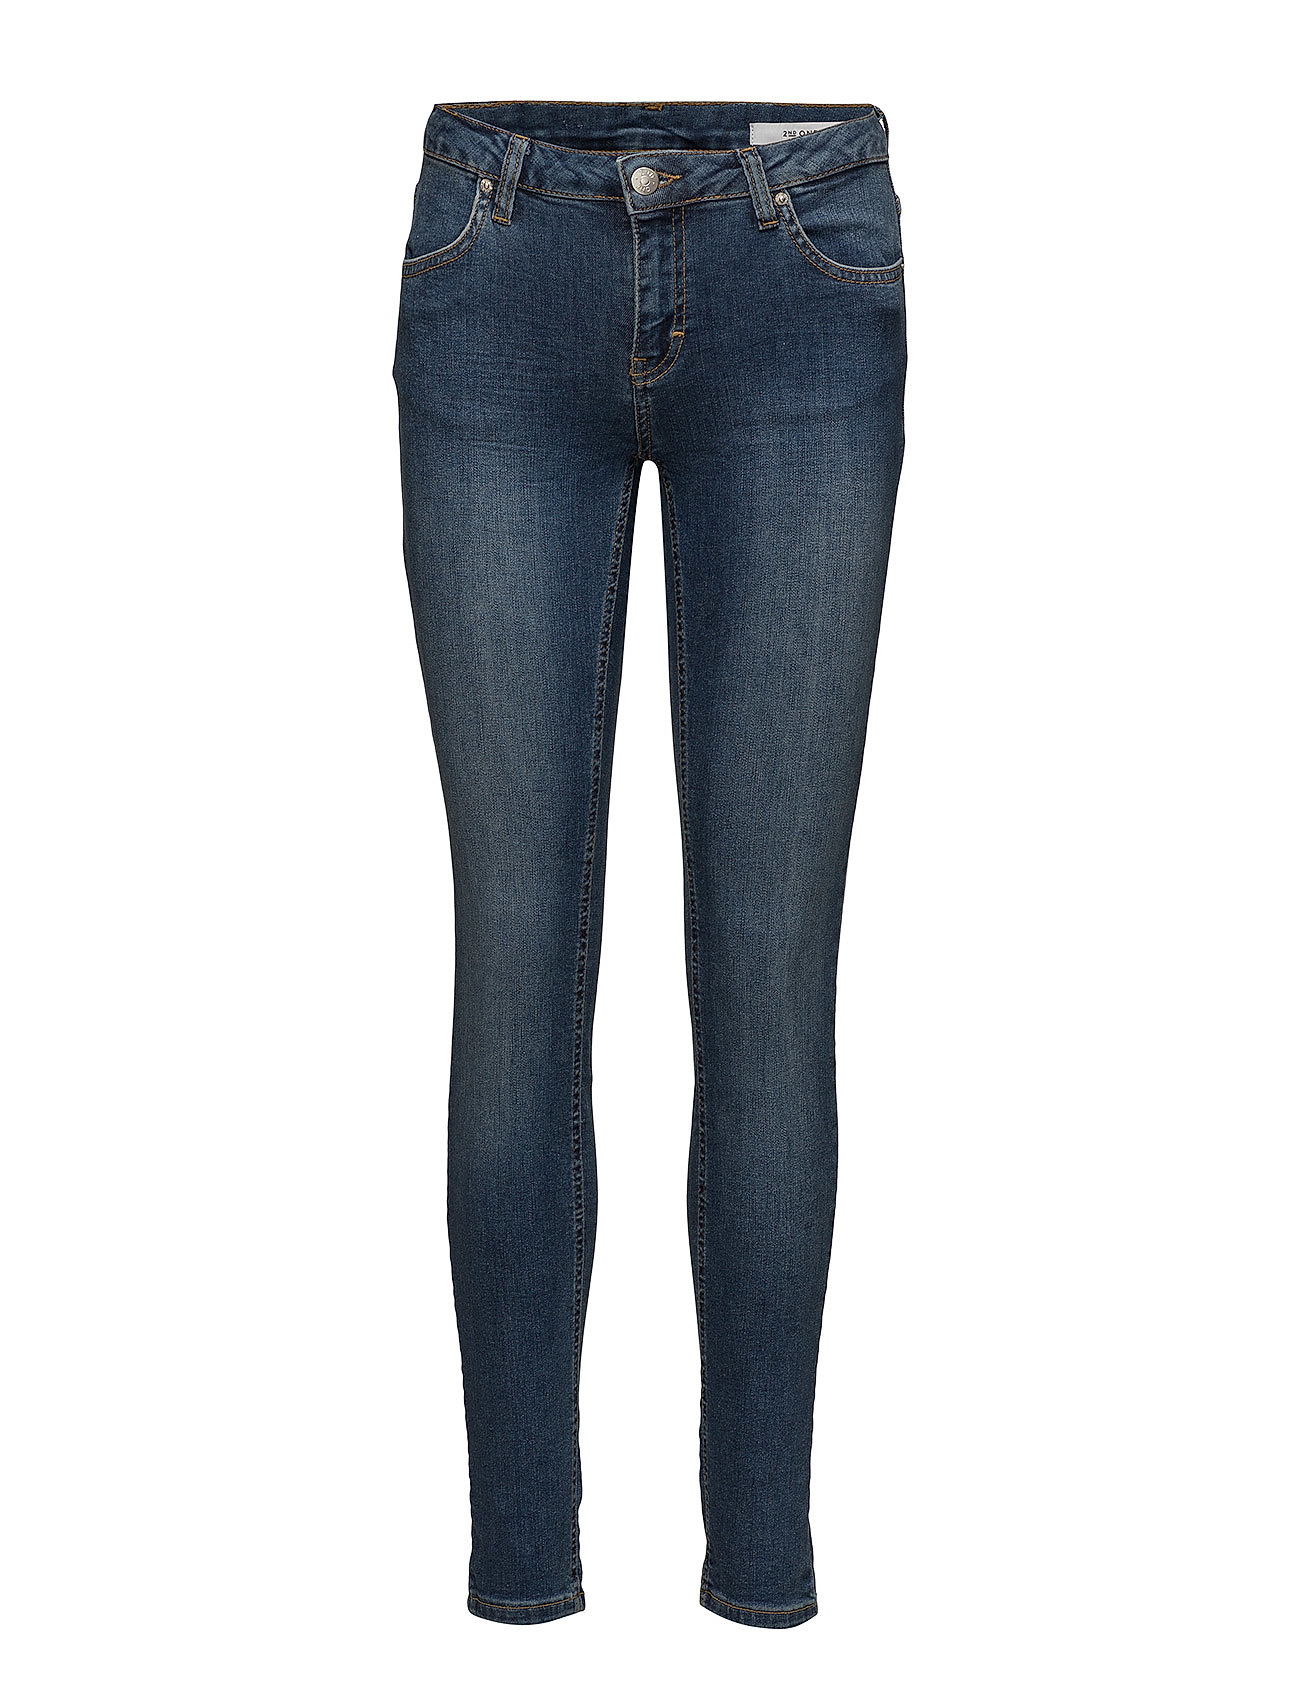 2nd One Nicole 893 Jeans Jeans